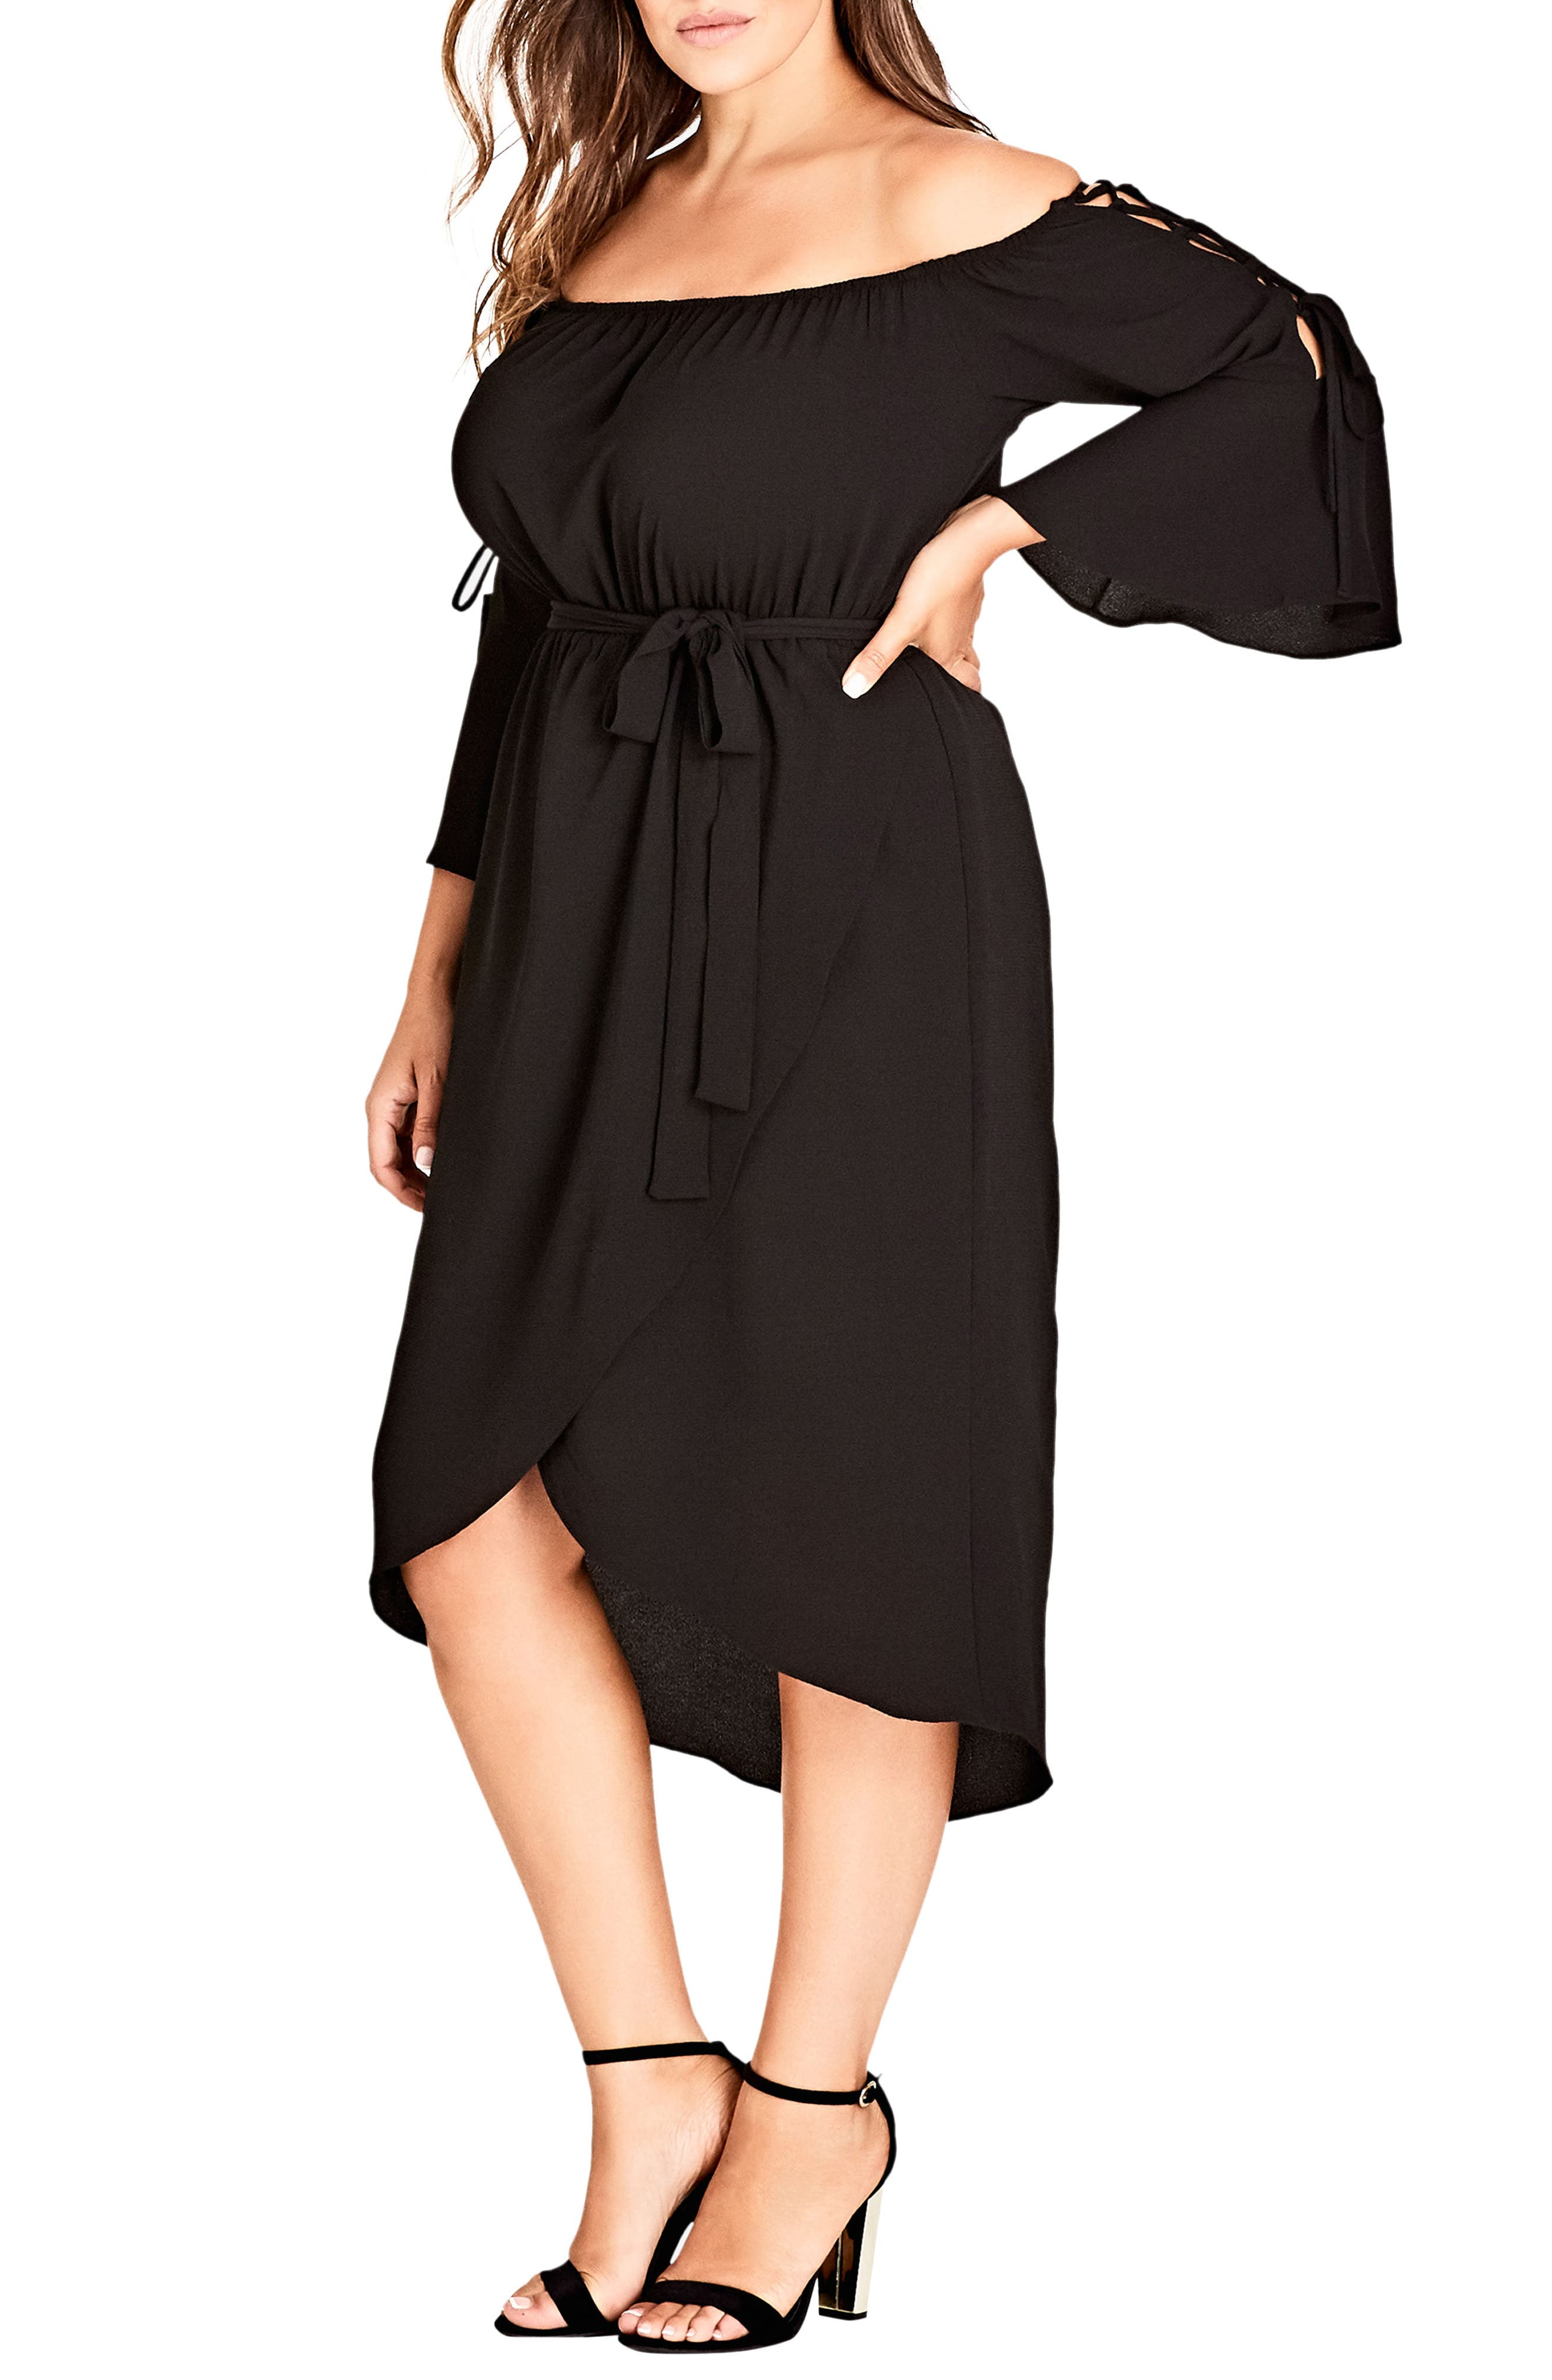 Lace Bell Sleeve Off the Shoulder Midi Dress,                             Main thumbnail 1, color,                             Black